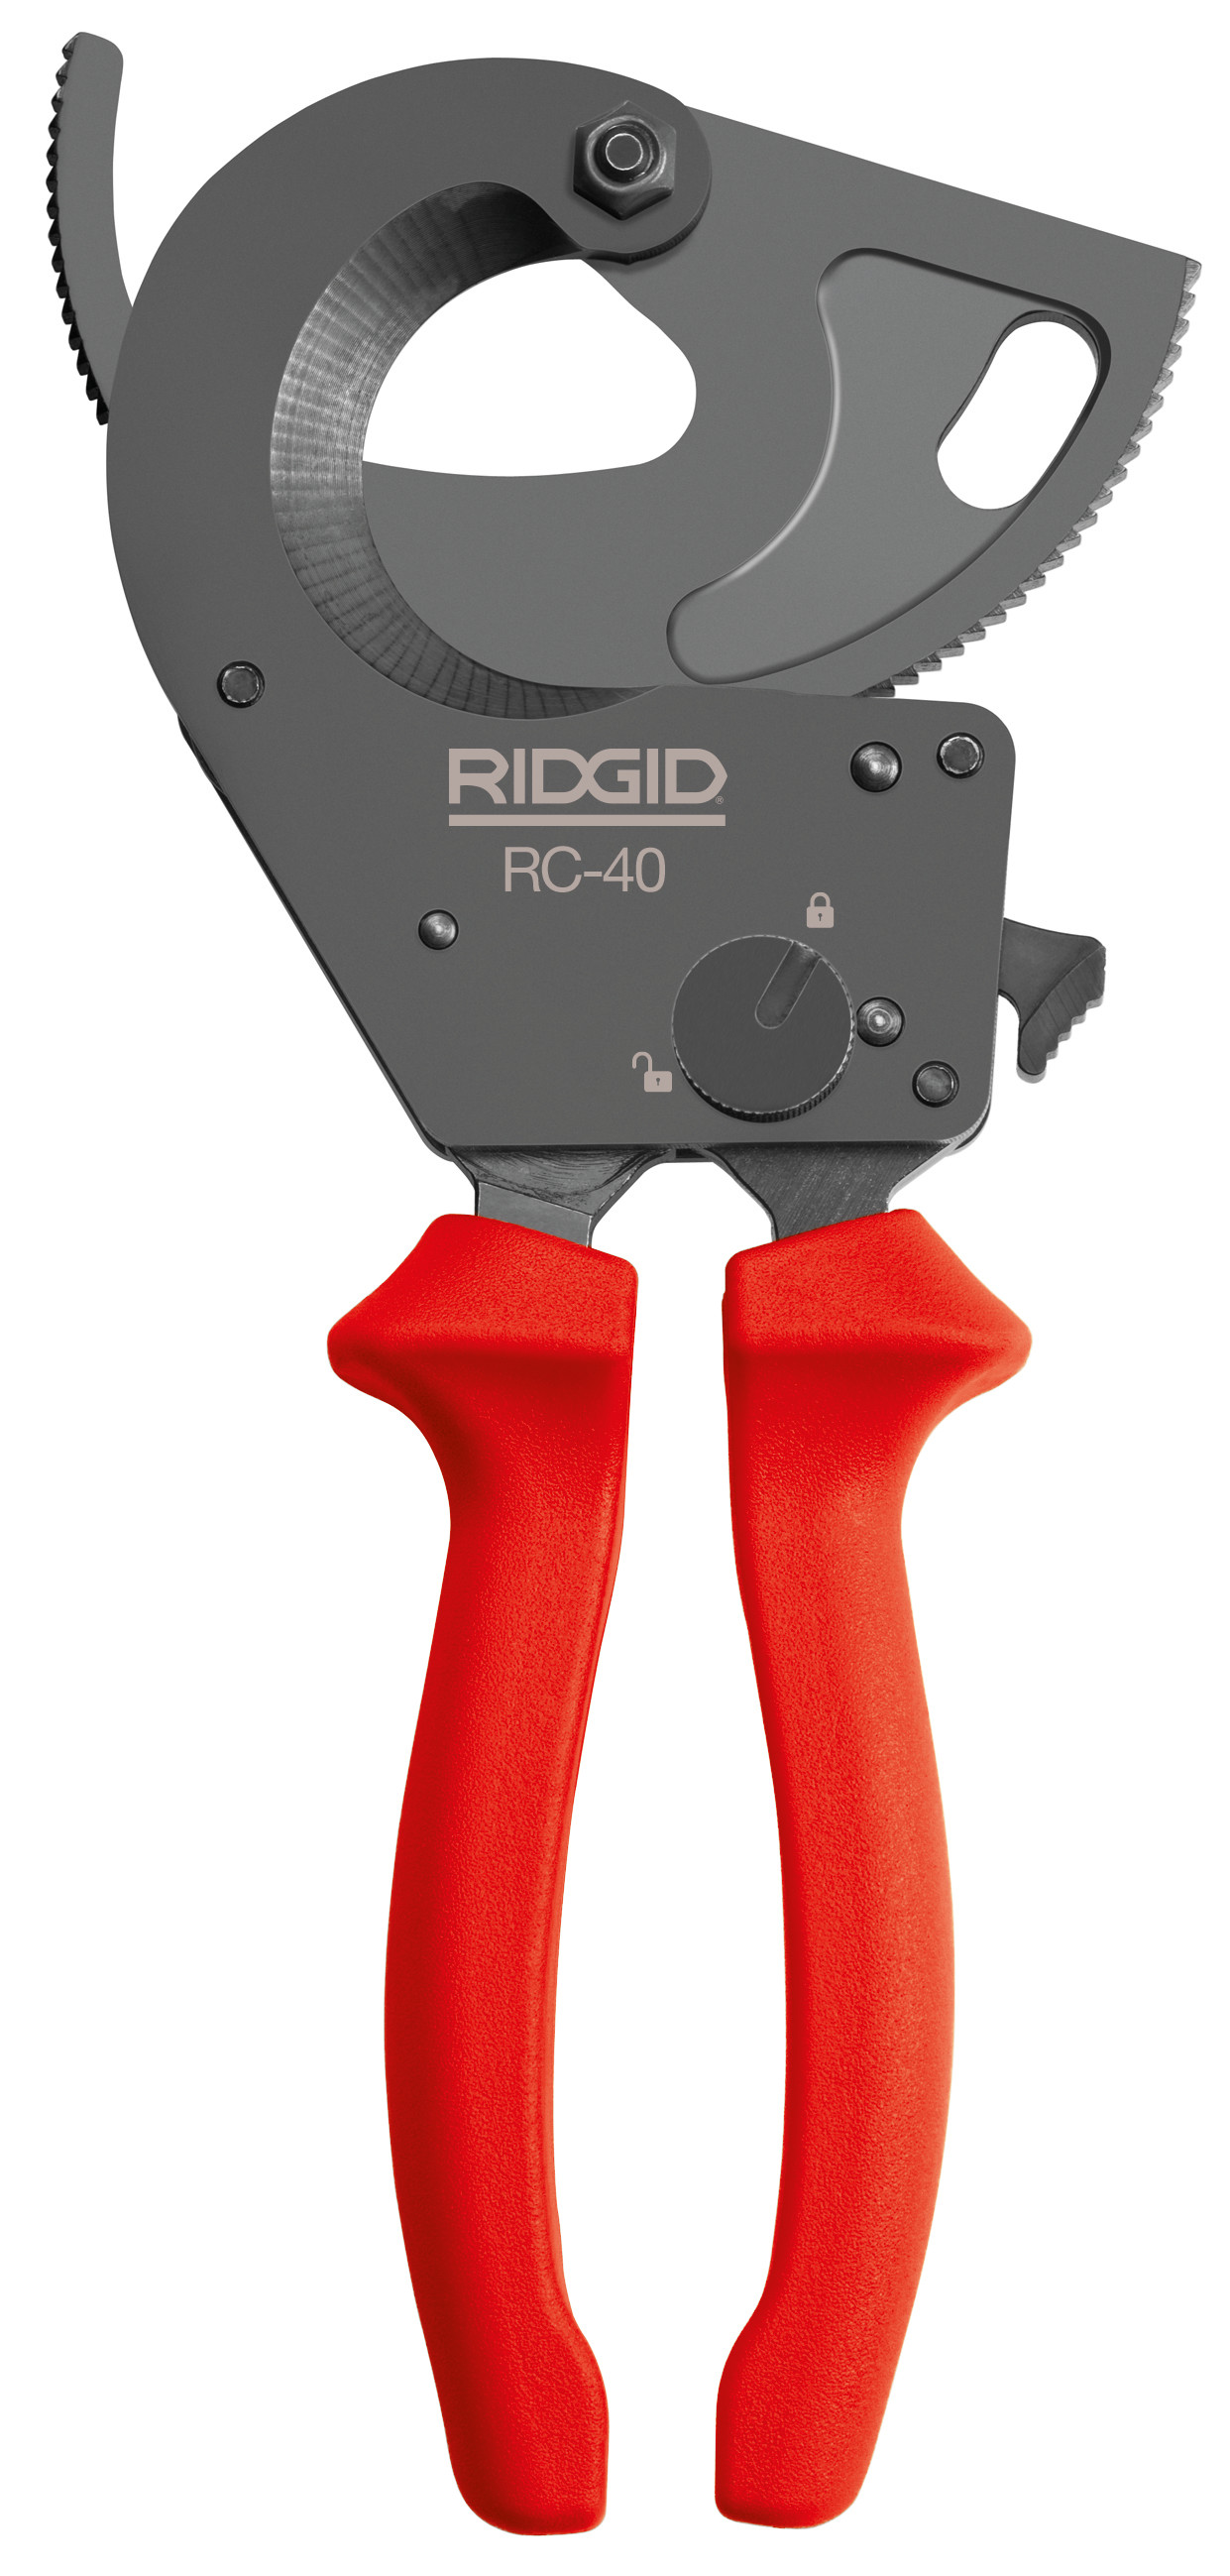 RIDGID 54288-RC40 - RC-40 Manual Ratchet Action Cable Cutter 40mm